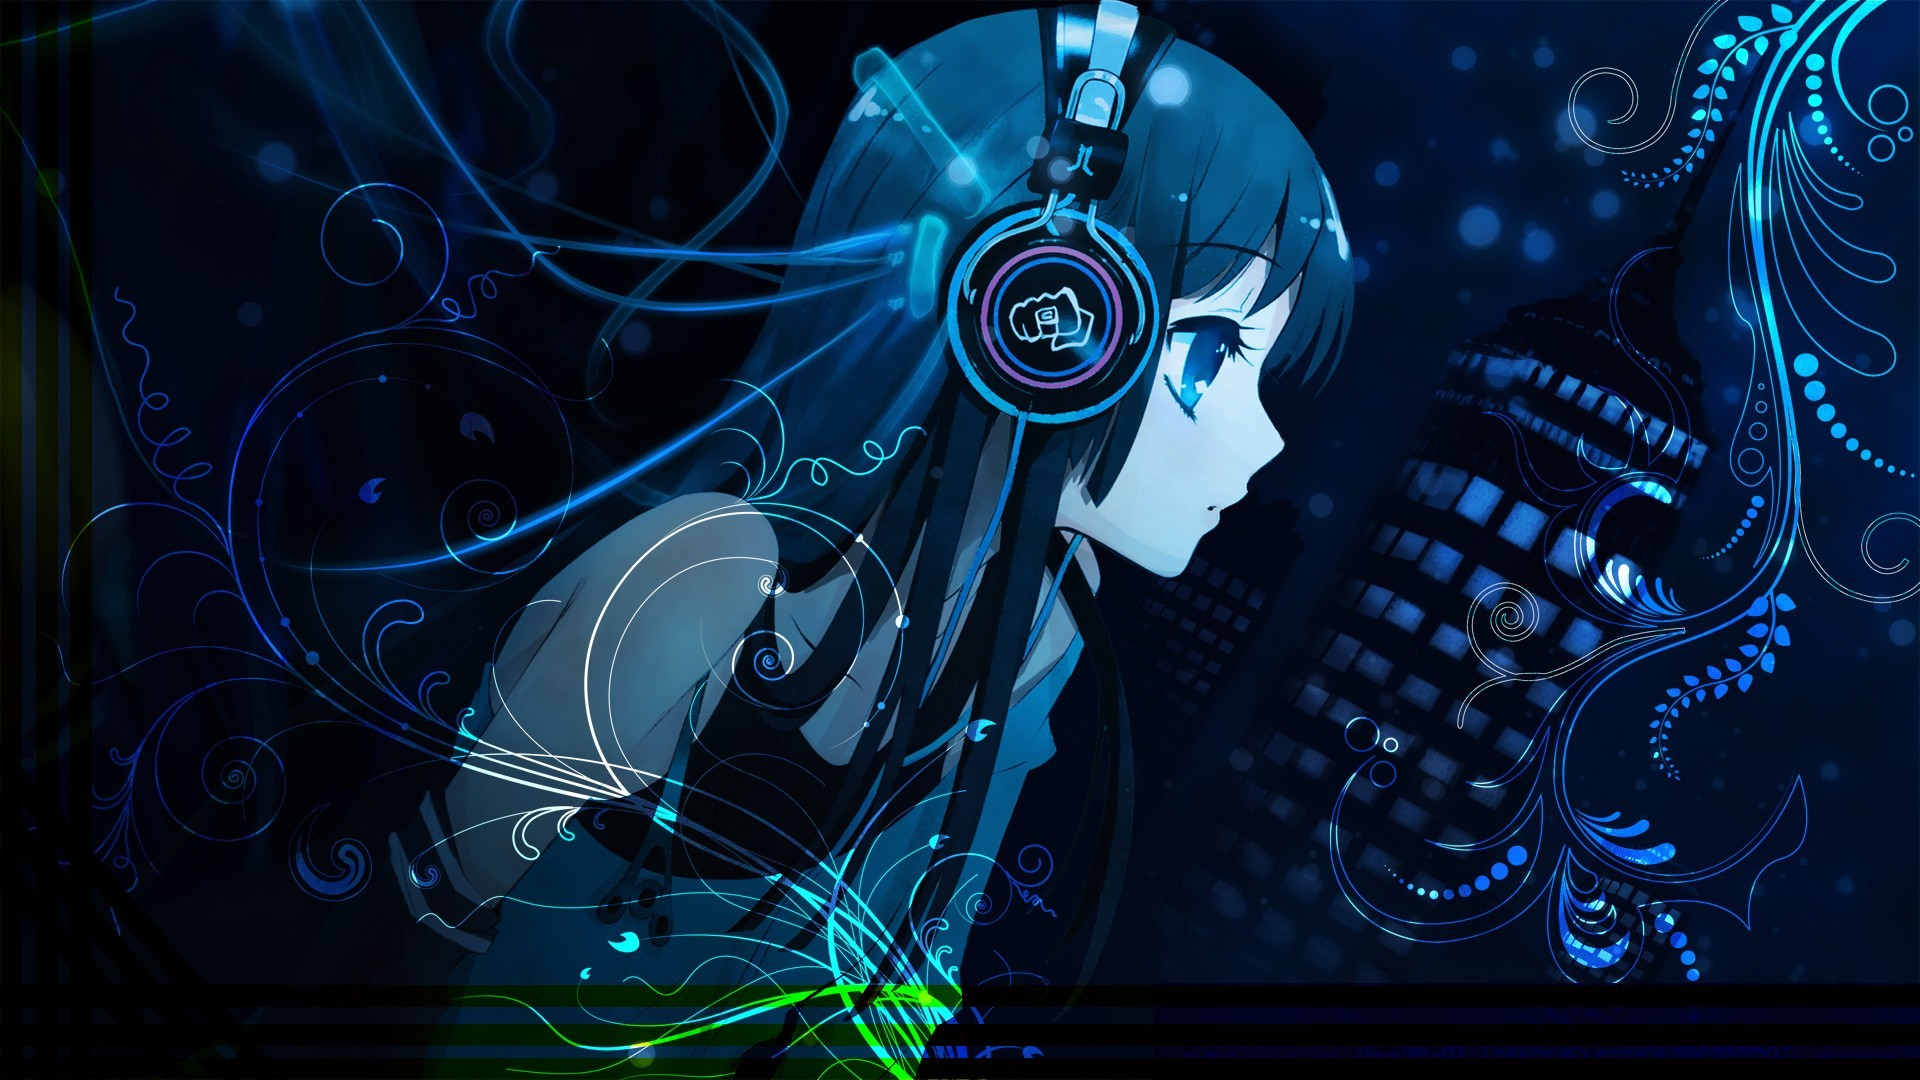 Anime-Music-Girl-DreamLove-wallpaper-wp3602551